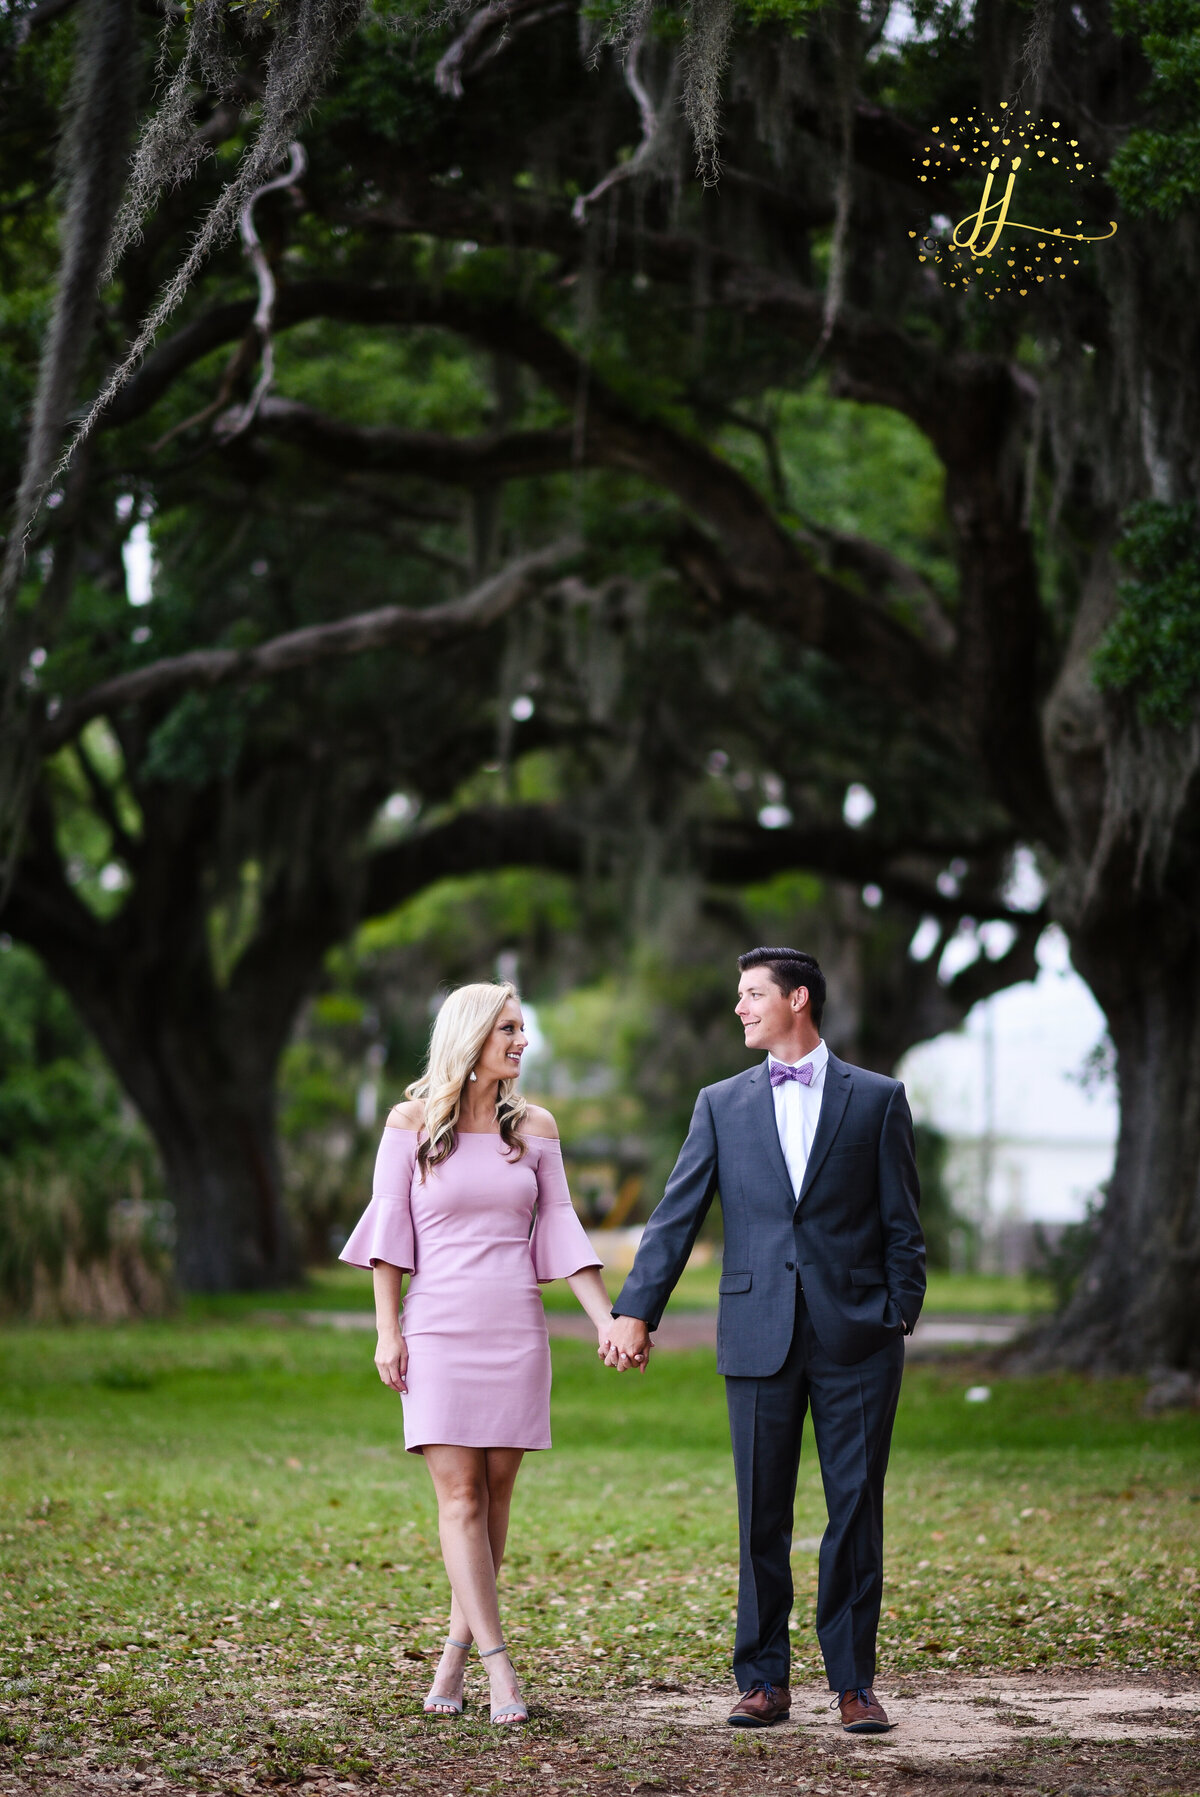 Beautiful Mississippi Engagement Photography: couple walks holding hands under oaks with Spanish Miss in Ocean Springs, MS